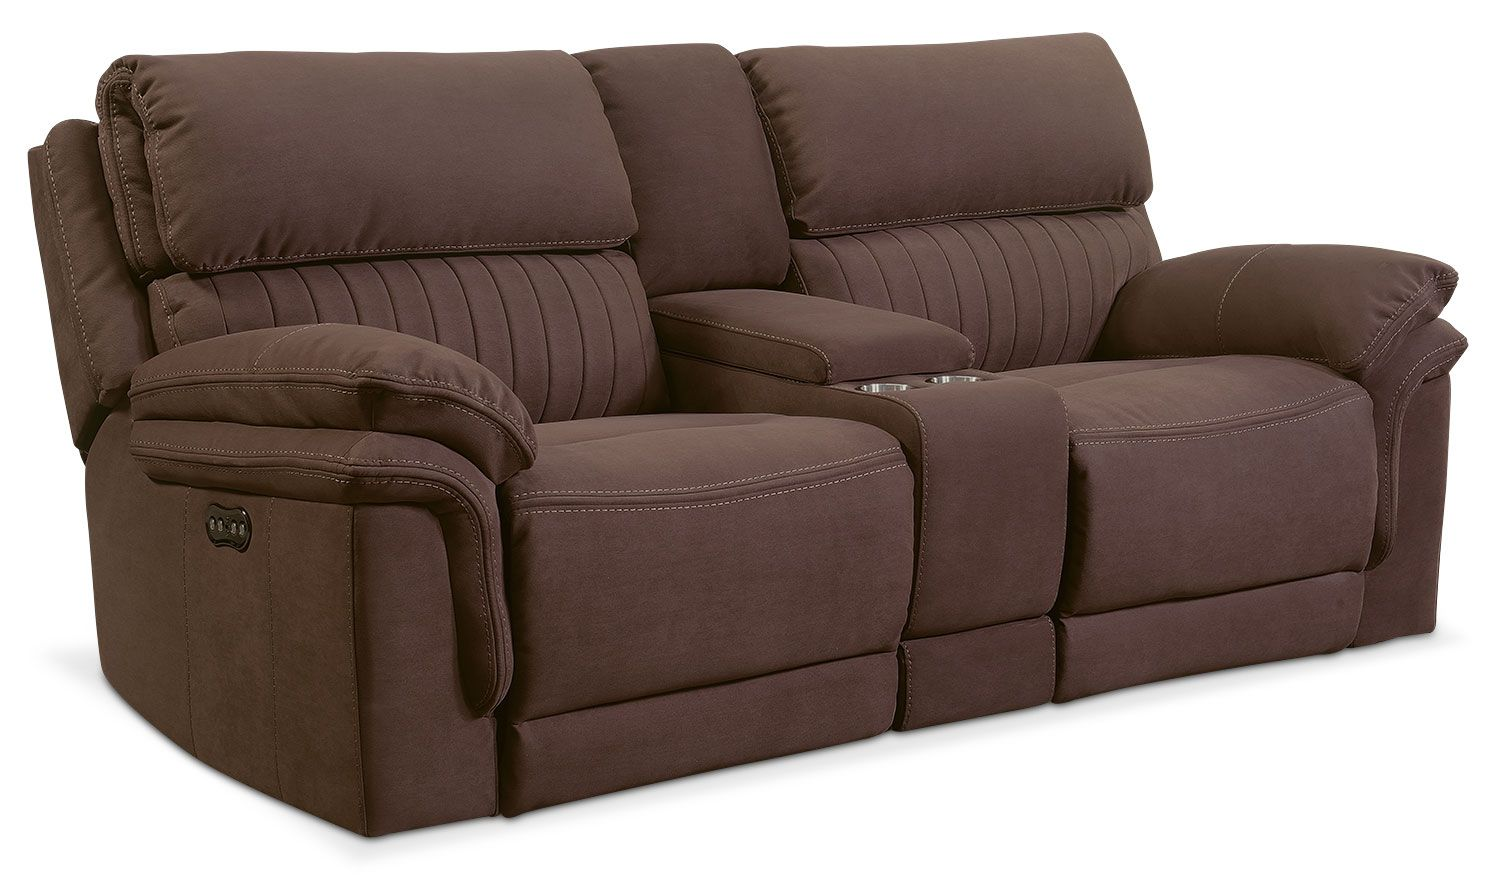 Living Room Furniture Monterey 3 Piece Power Reclining Sofa With Console Mocha Power Reclining Sofa Power Reclining Loveseat Love Seat